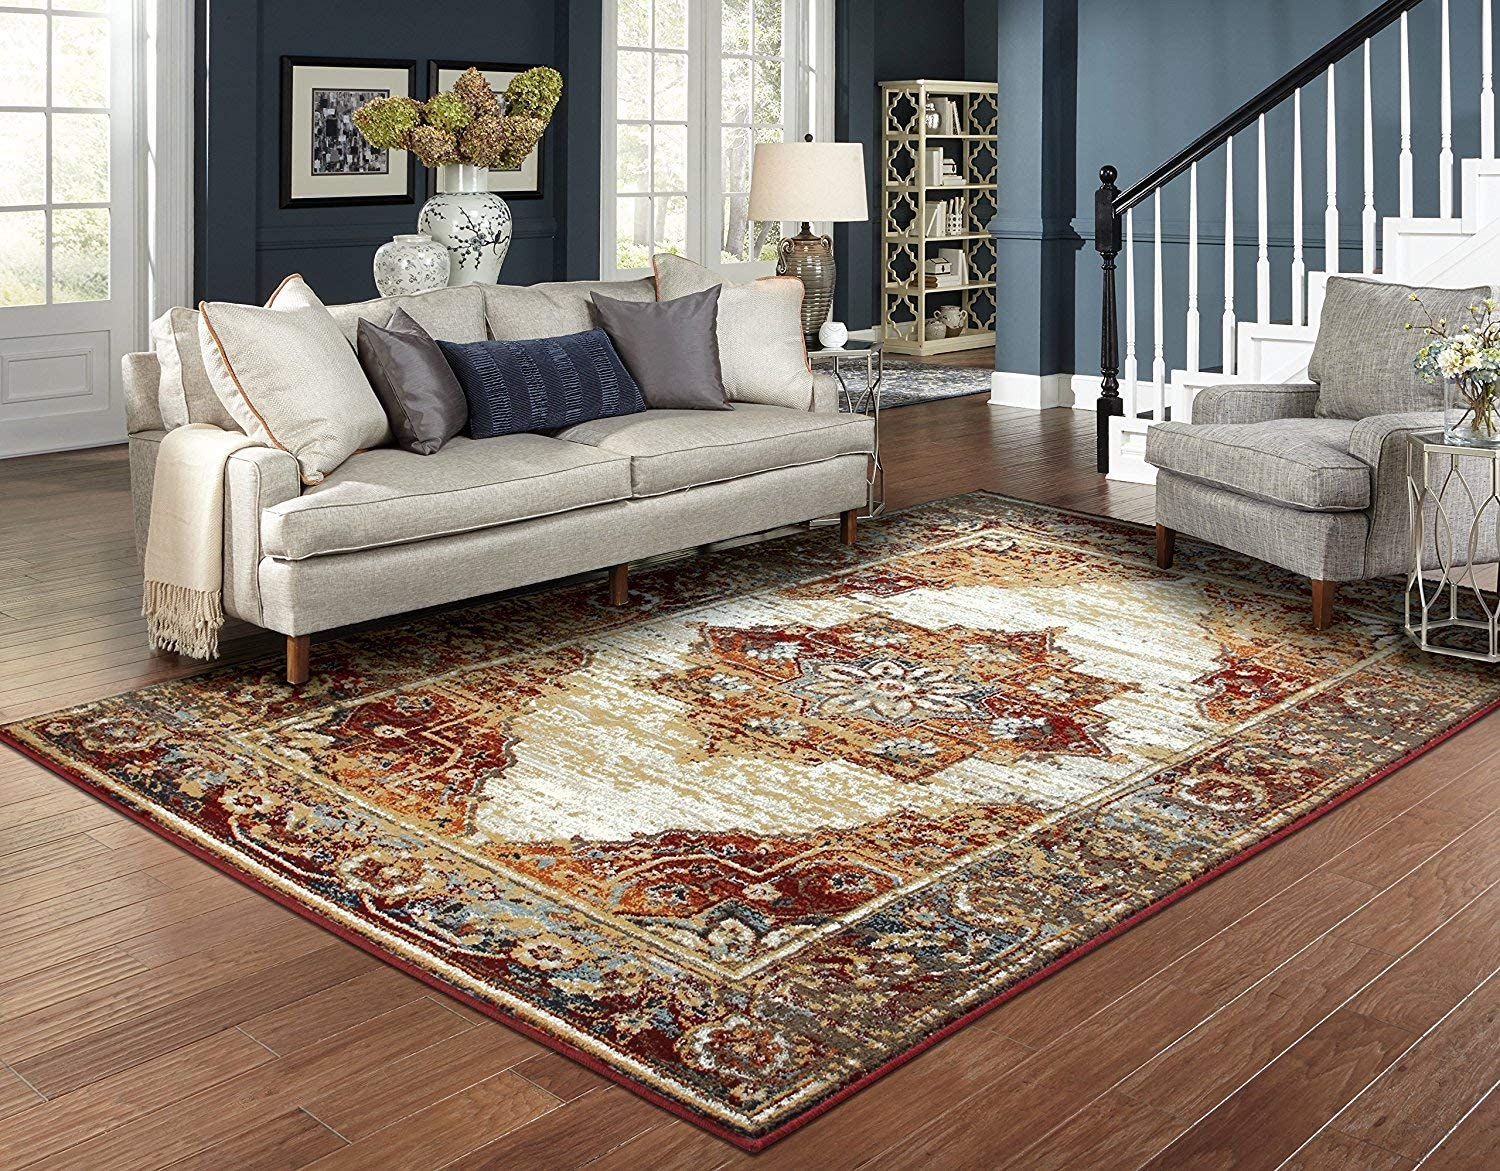 Amazon.com: Luxury Distressed Rugs for Living Room 8x10 ...